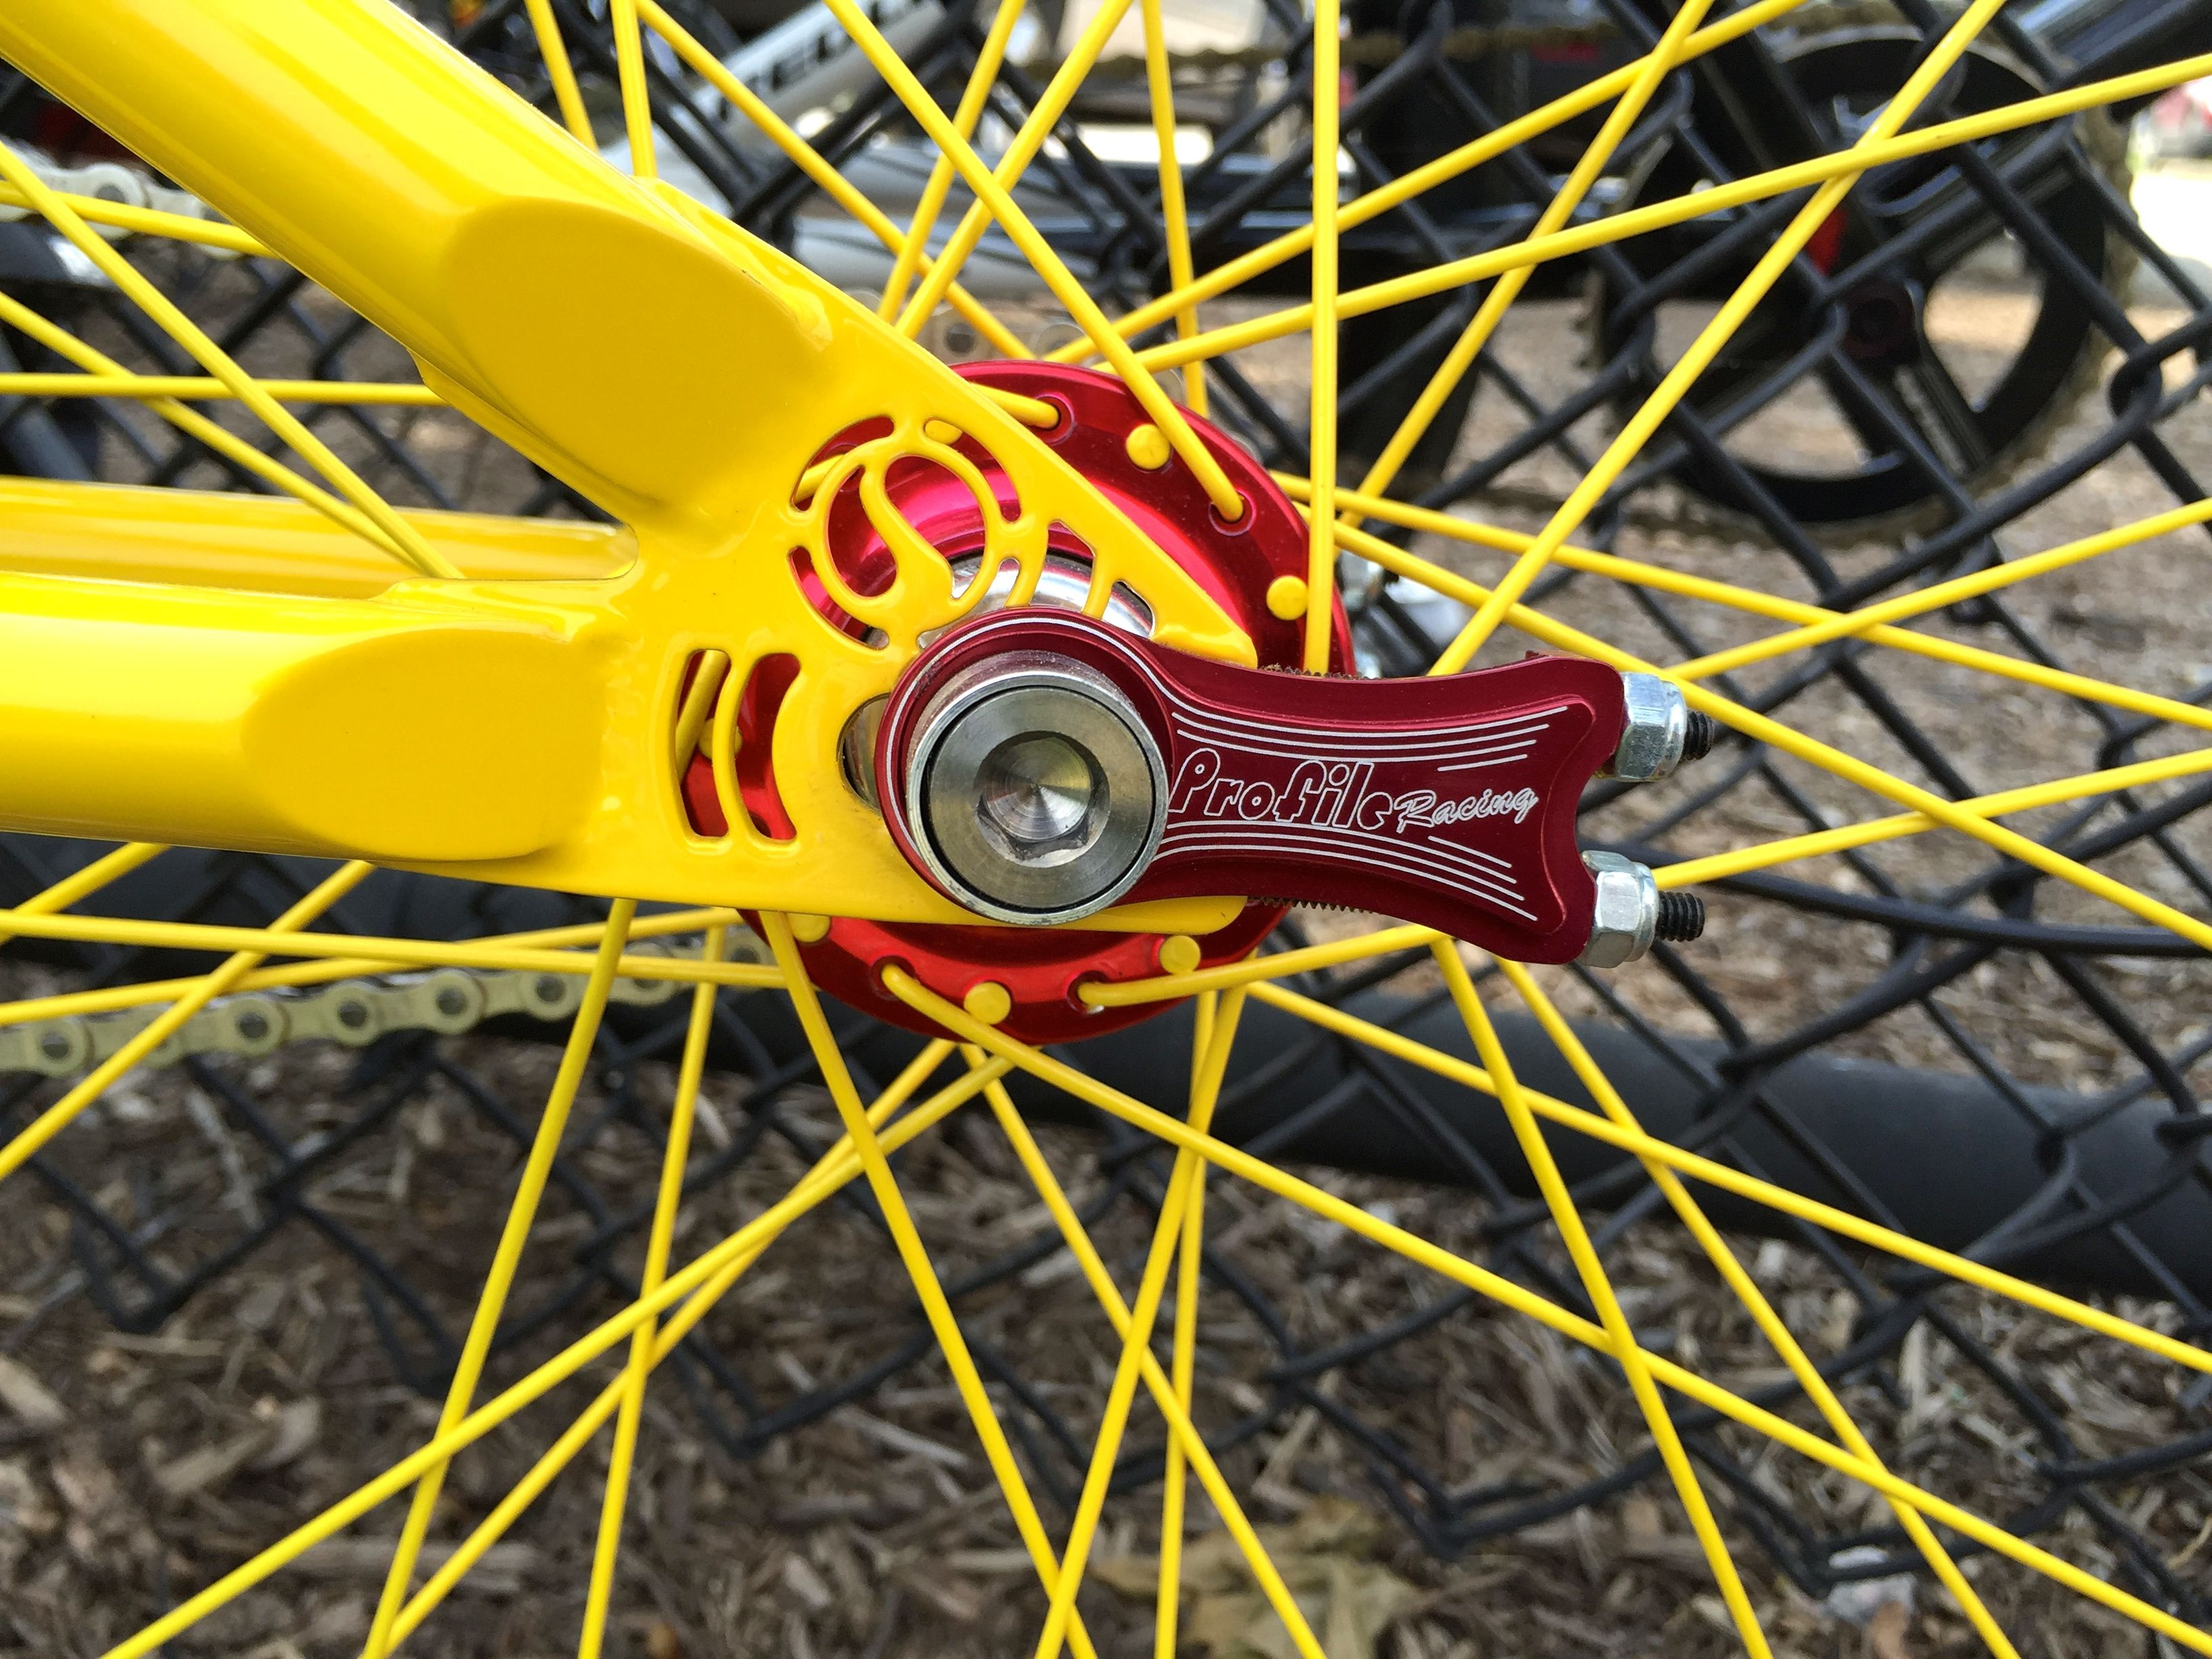 Profile Racing #madeintheusa Chain Tensioners, close-up of